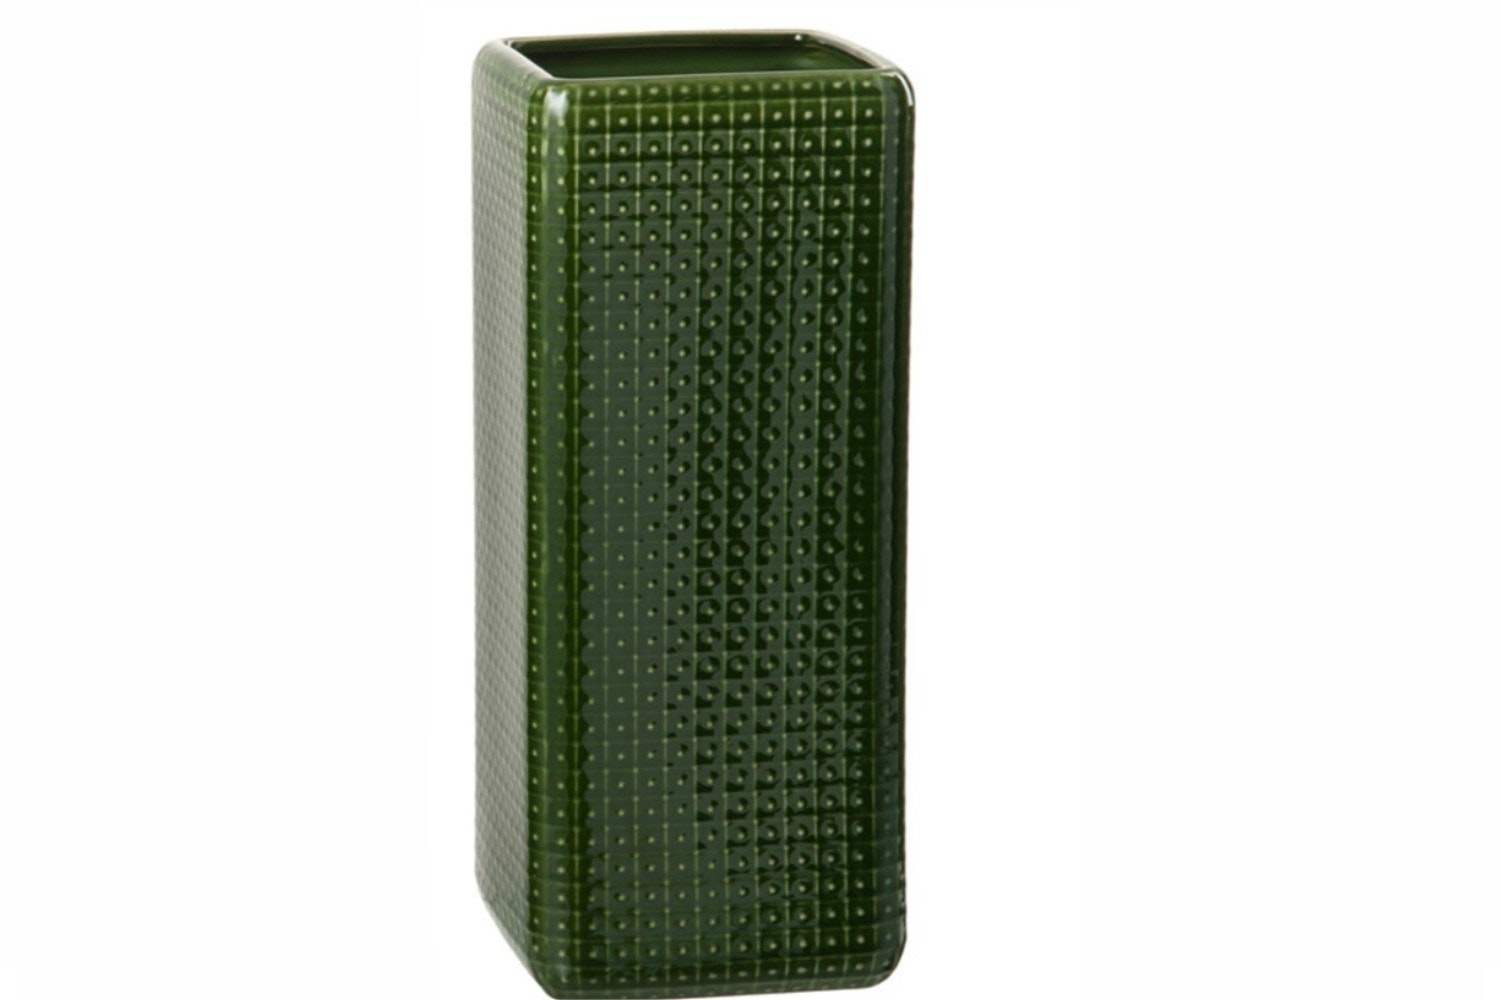 Green Square Ceramic Vase